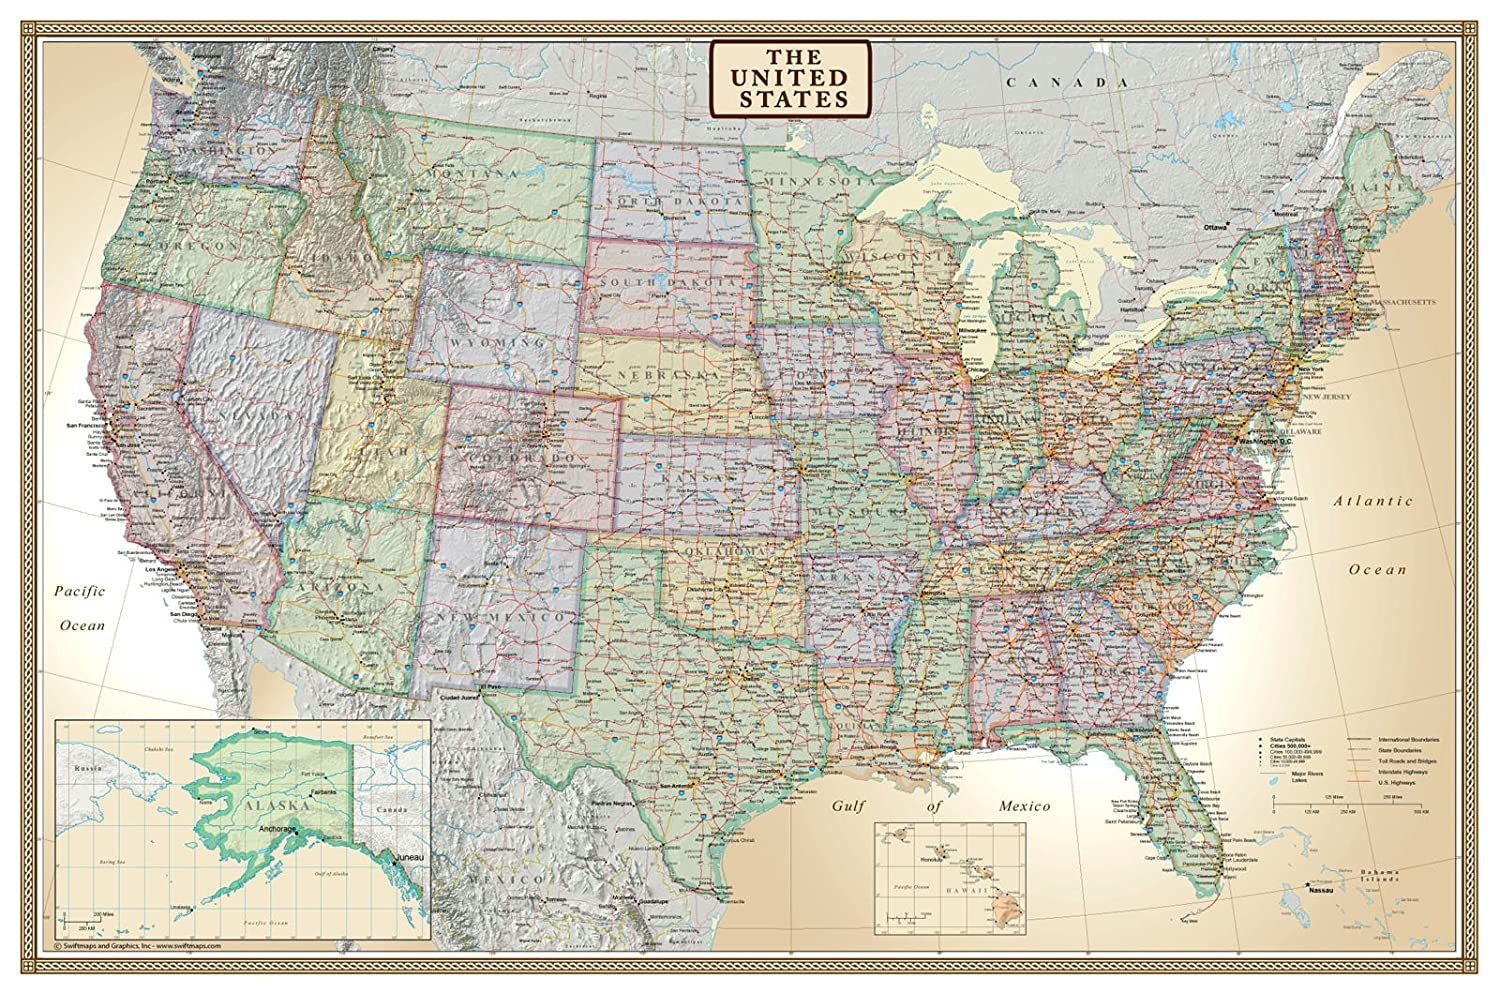 Amazoncom X United States USA US Executive Wall Map Poster - Large laminated us map